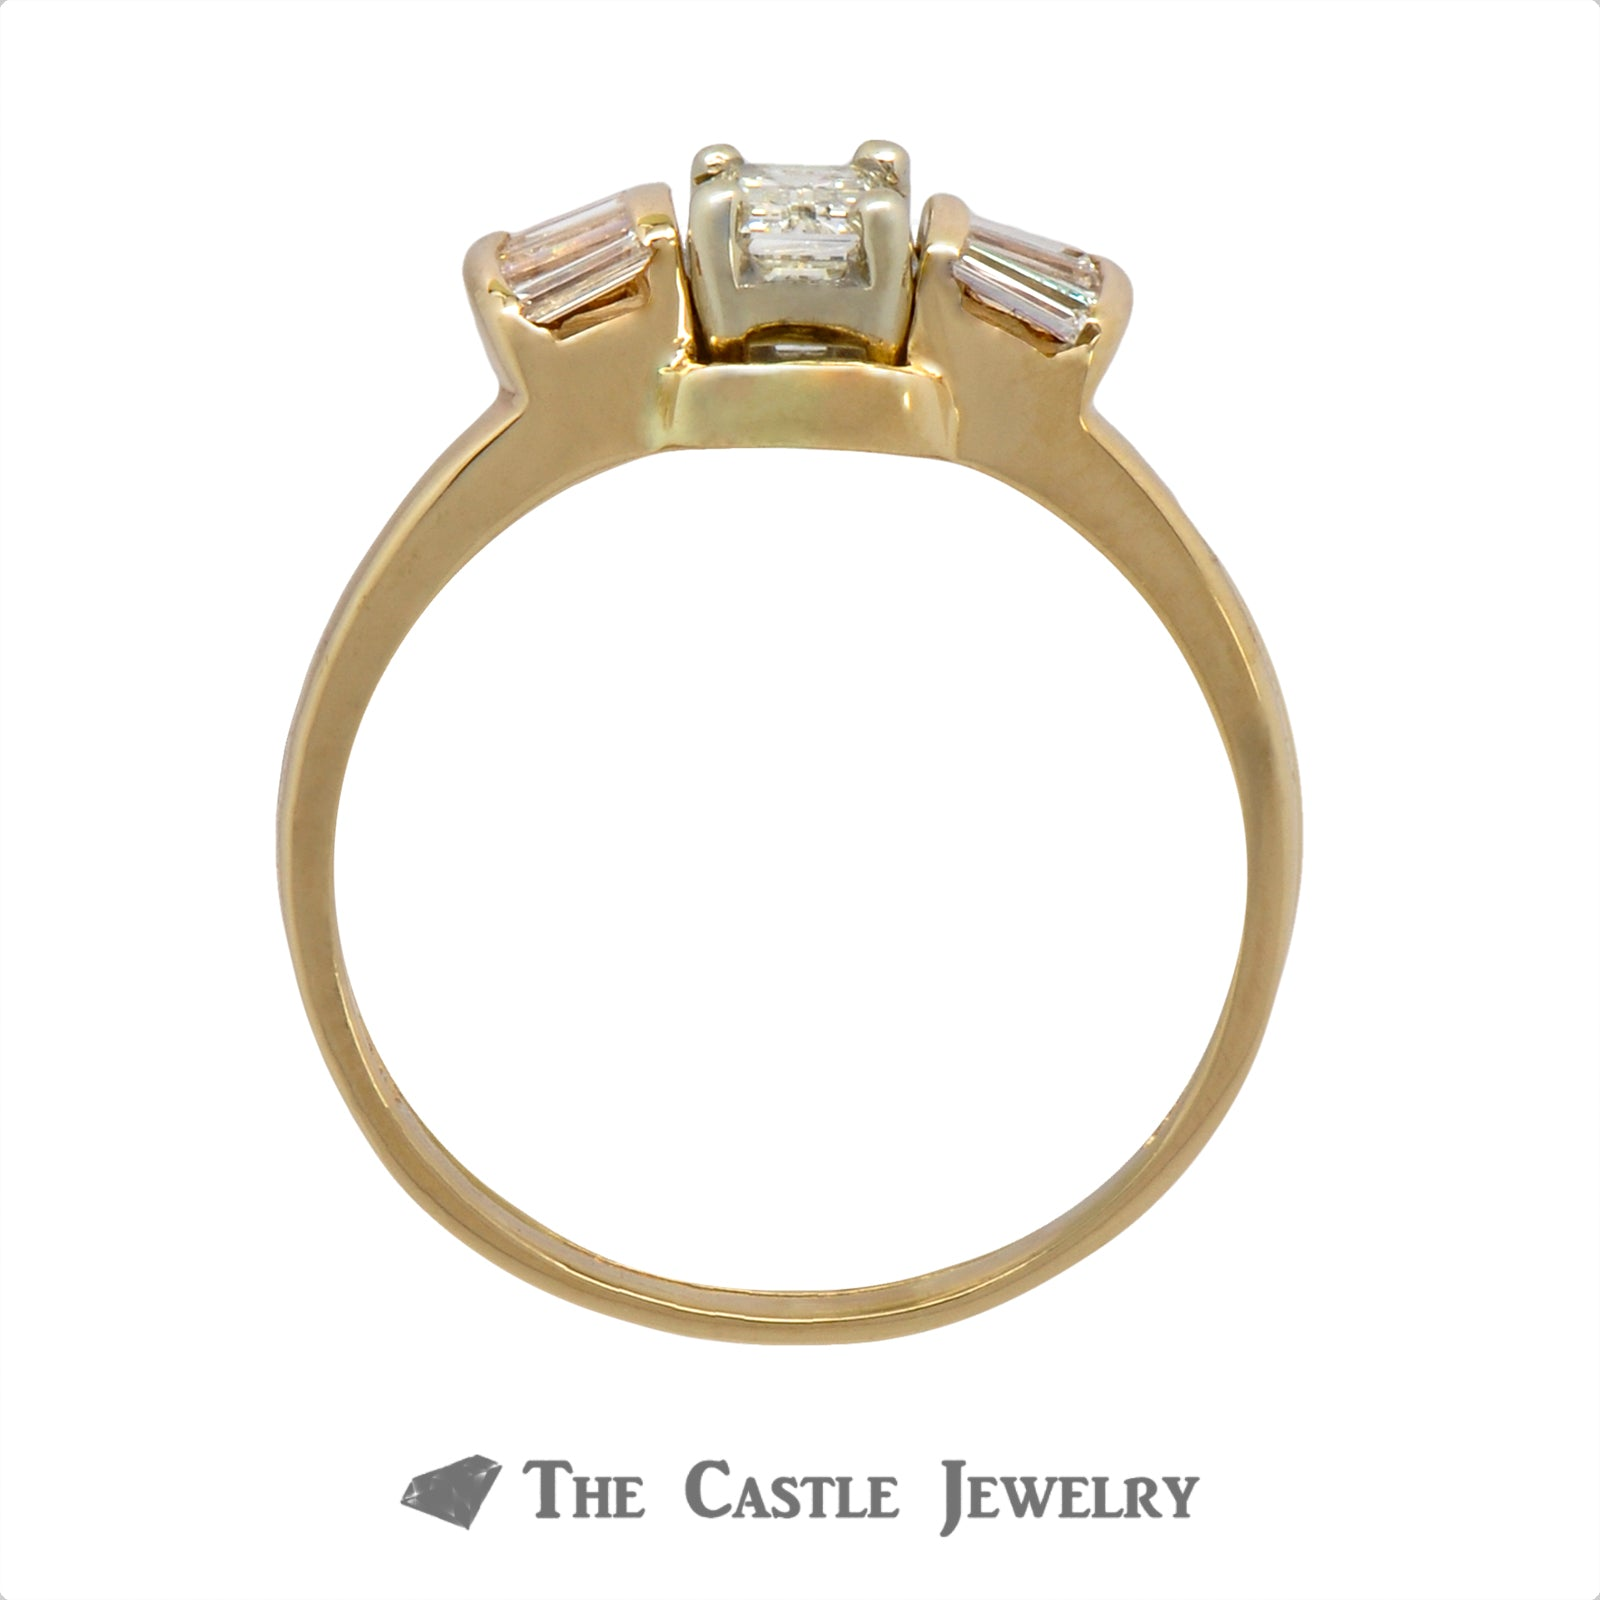 Emerald Cut Bridal Set with Baguette Accents Crafted in 14k Yellow Gold-1